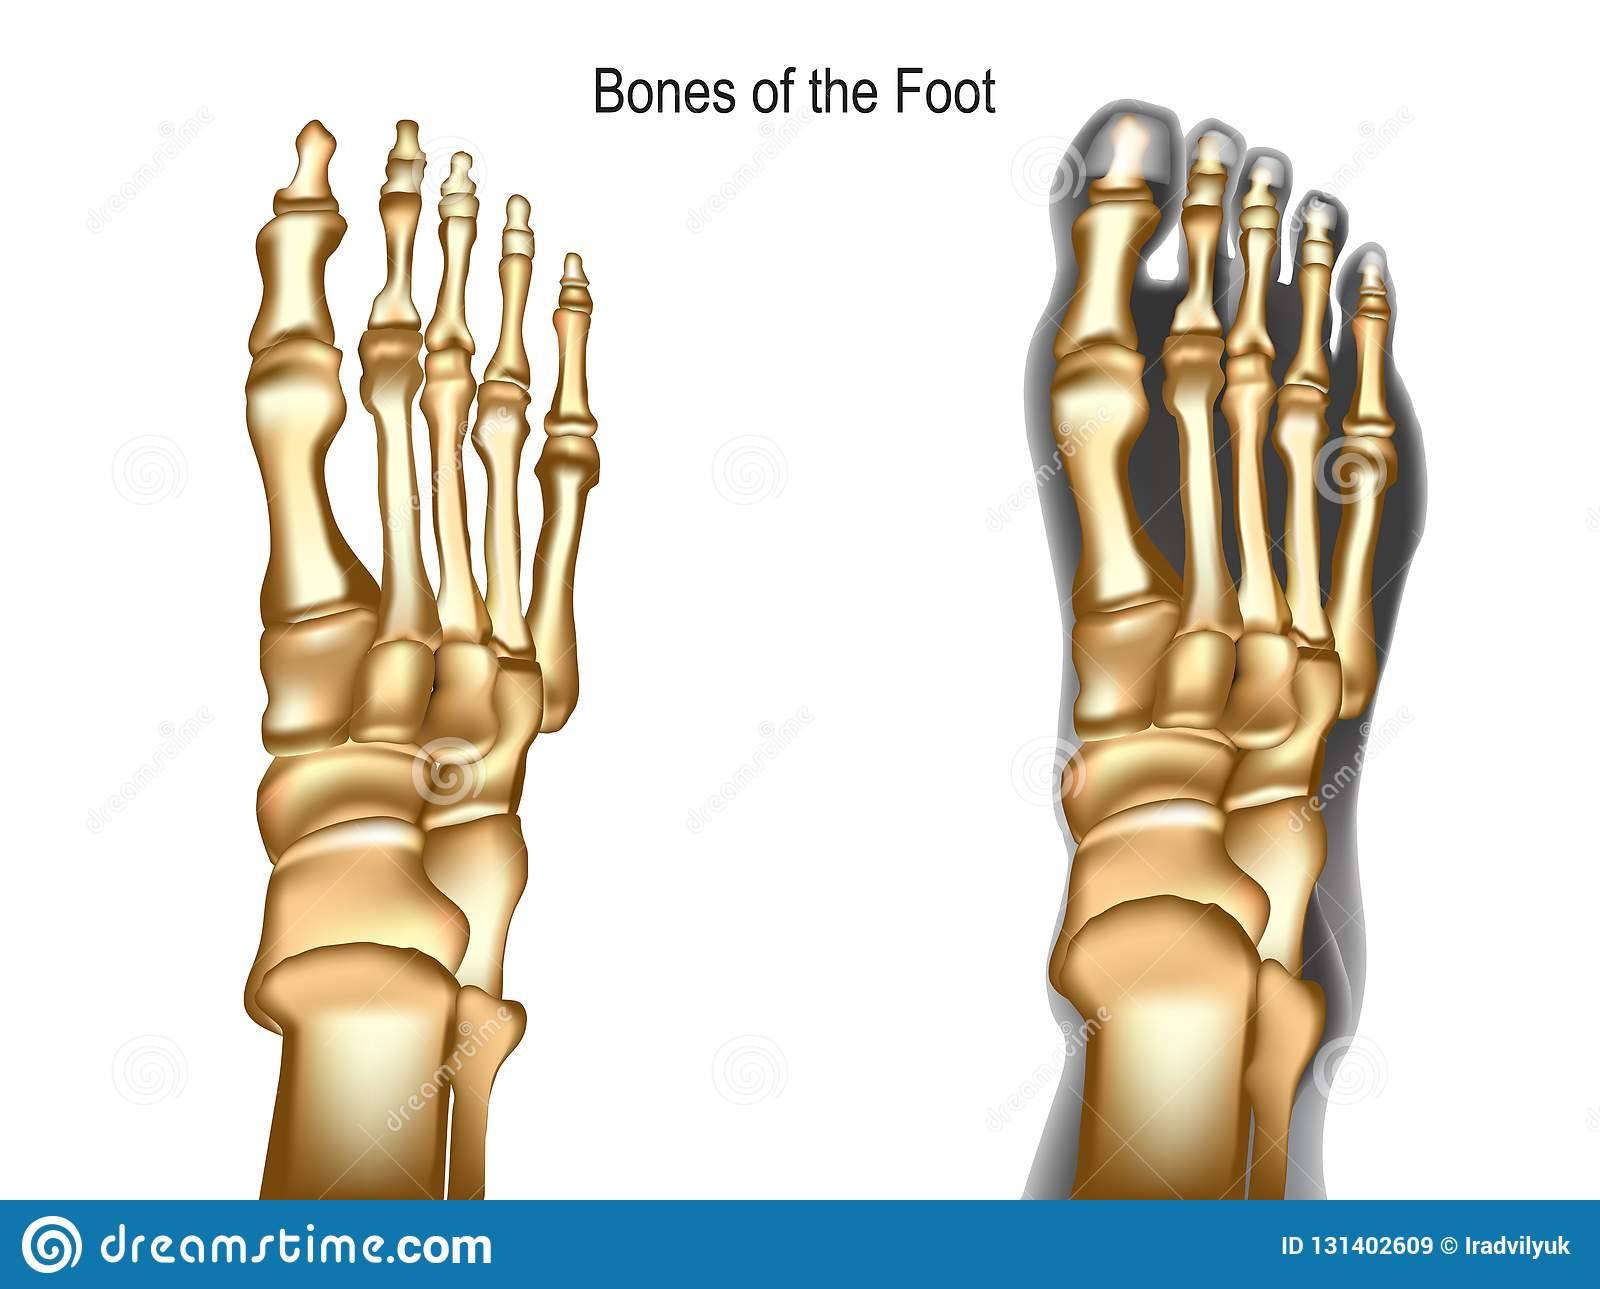 Bones The Of Foot Stock Vector Illustration Of Joint 131402609